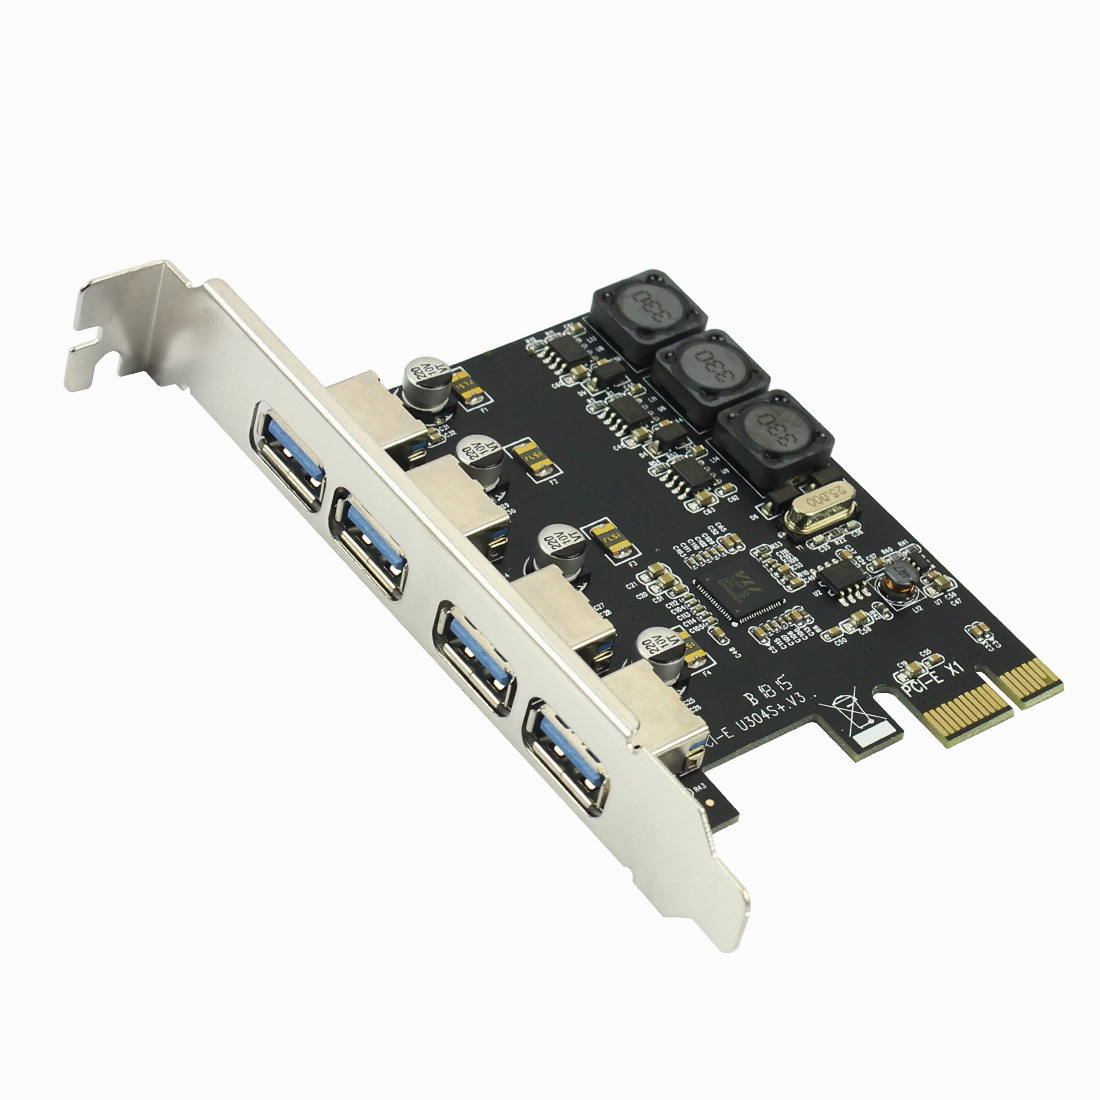 5Gbps 4-port USB3.0 PCI-E Expansion Card Adapter PCI Express USB 3.0 Driver for PCIe X1 X4 X8 X16 Port for Win 7/8/10